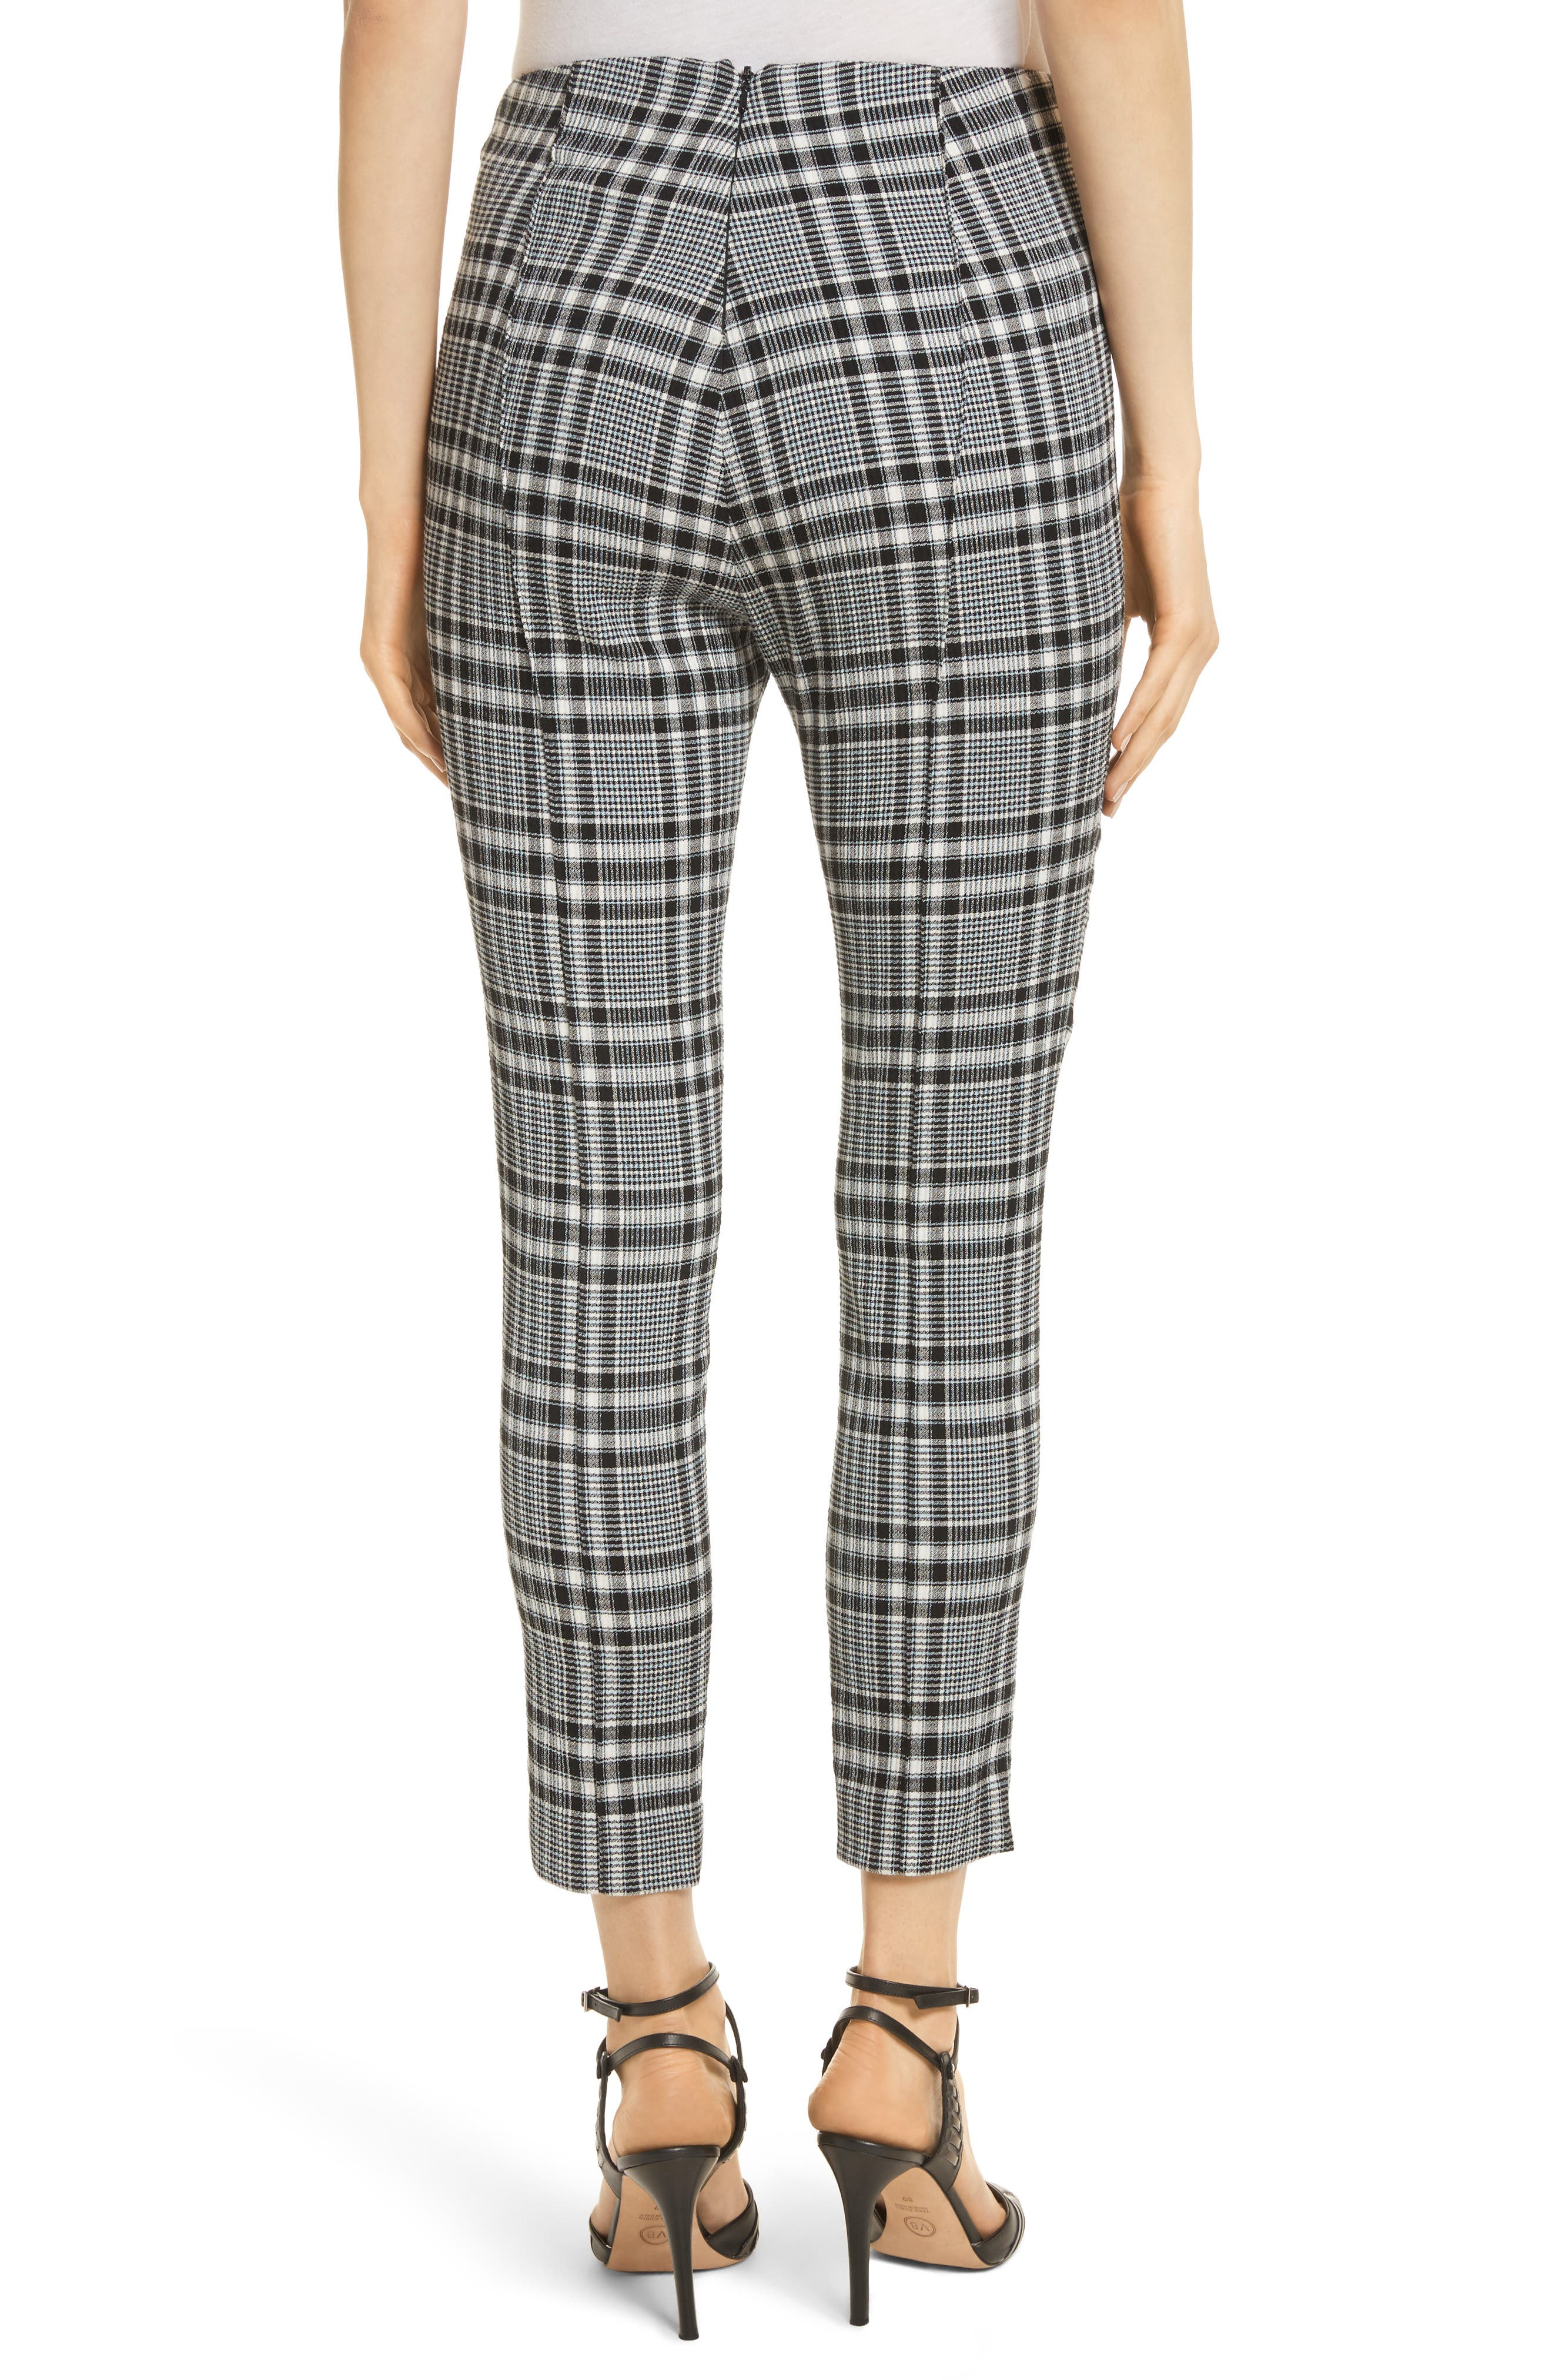 Honolulu Plaid Crop Pants,                             Alternate thumbnail 2, color,                             Black/ Blue